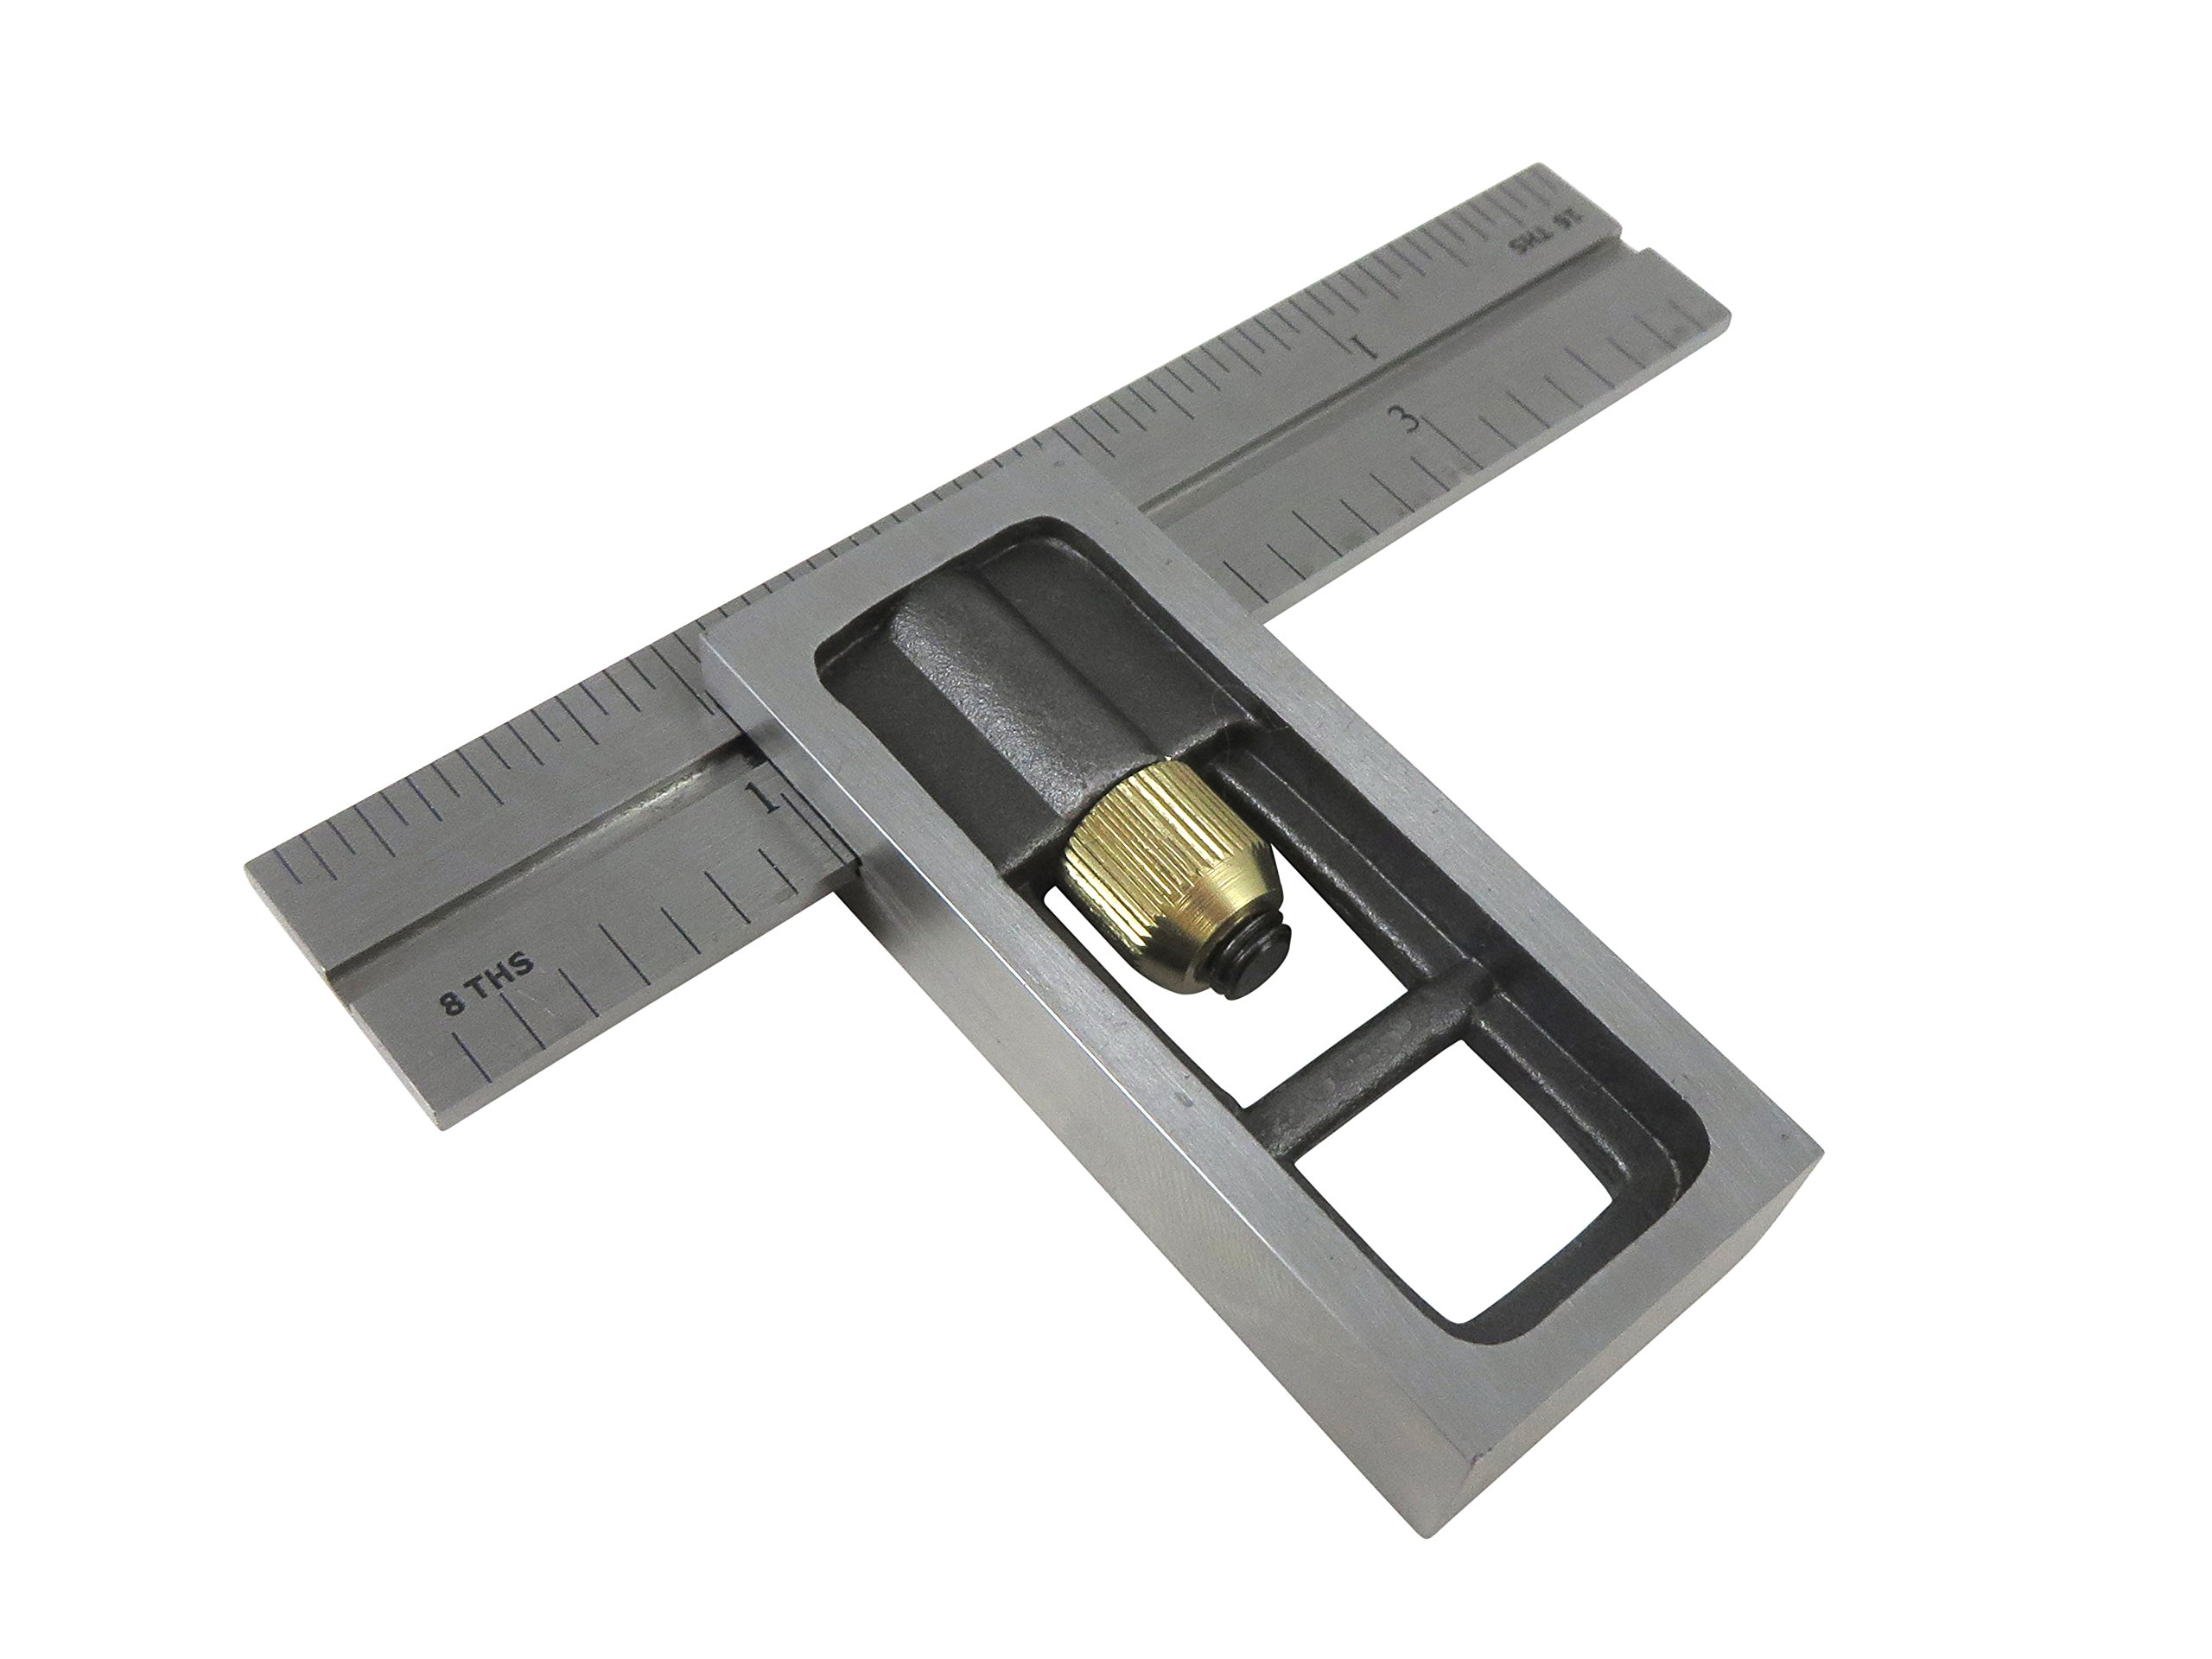 Taytools 469546 4'' Double Machinist Square with 4R markings 1/8, 1/16, 1/32. 1/64, Hardened Blade